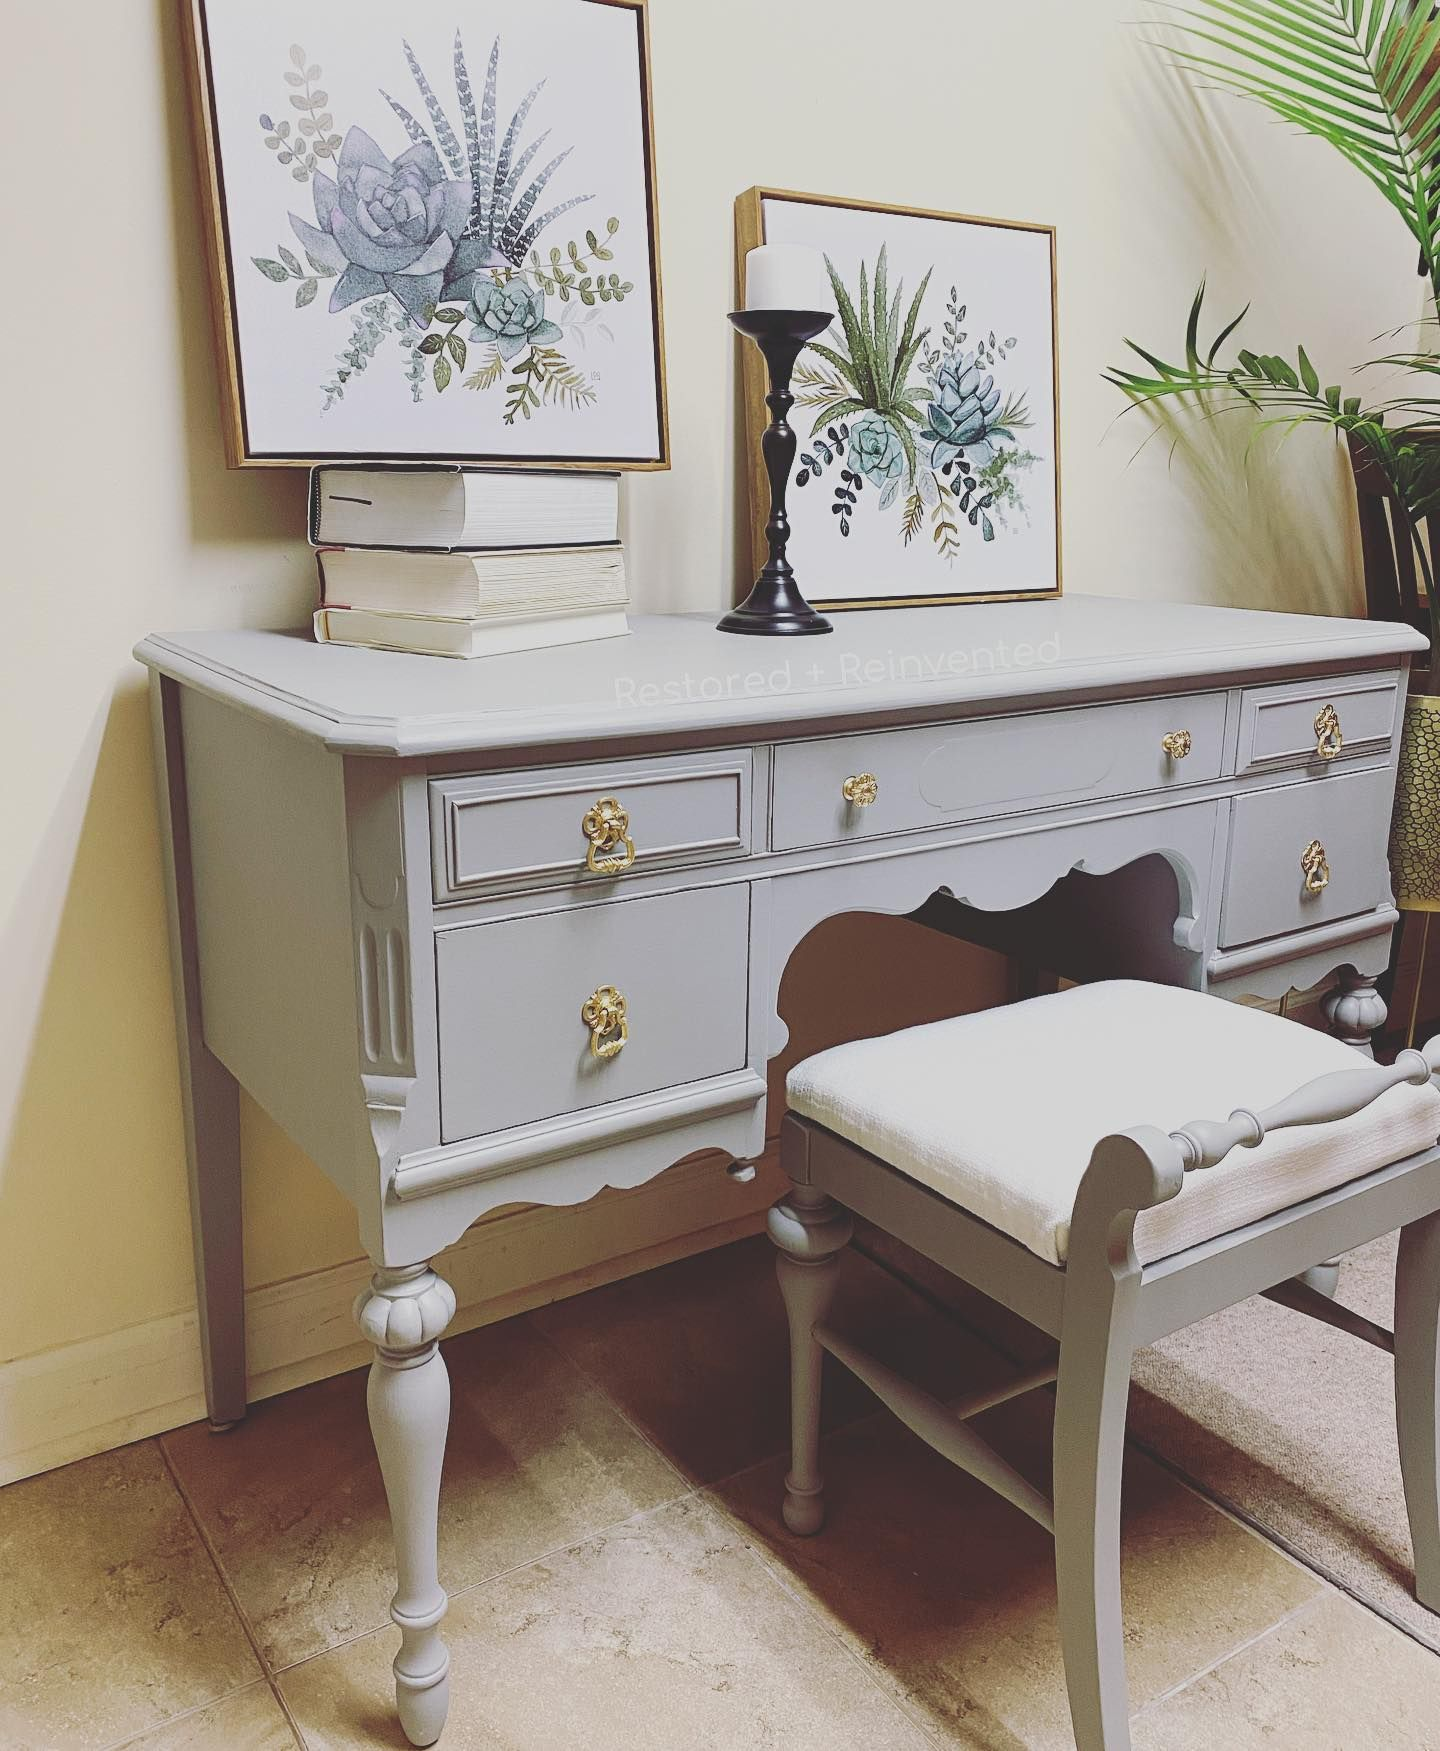 [A v a i l a b l e] This antique piece was finished with @FusionMineralPaint I absolutely love working with this paint, it creates such a flawless finish and is very durable. #furnituremakeover #furniture #furnitireartisan #furnitureart #furniturerestoration #refinishedfurniture #chalkpaint #chalkpainted #chalkpaintedfurniture #paintitbeautiful #refinished #paintedfurniture #upcycle #upcycledfurniture #vintage #antique #antiquefurniture #vintagefurniture